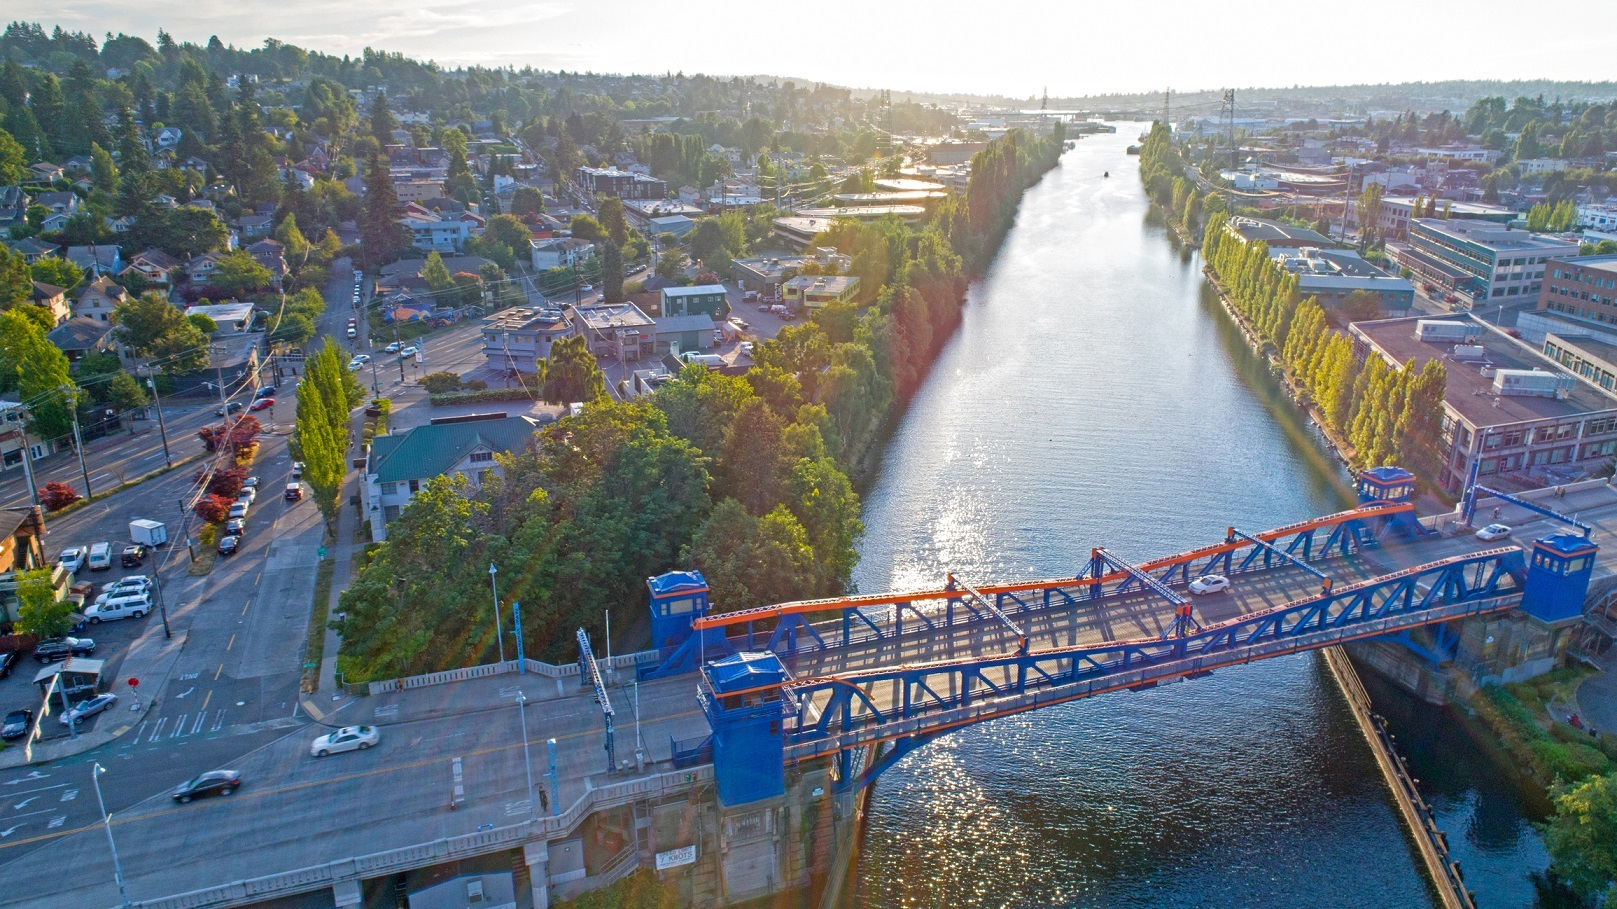 Fremont Bridge Seattle Lake Washington Ship Canal Magnolia Neighborhood Aerial